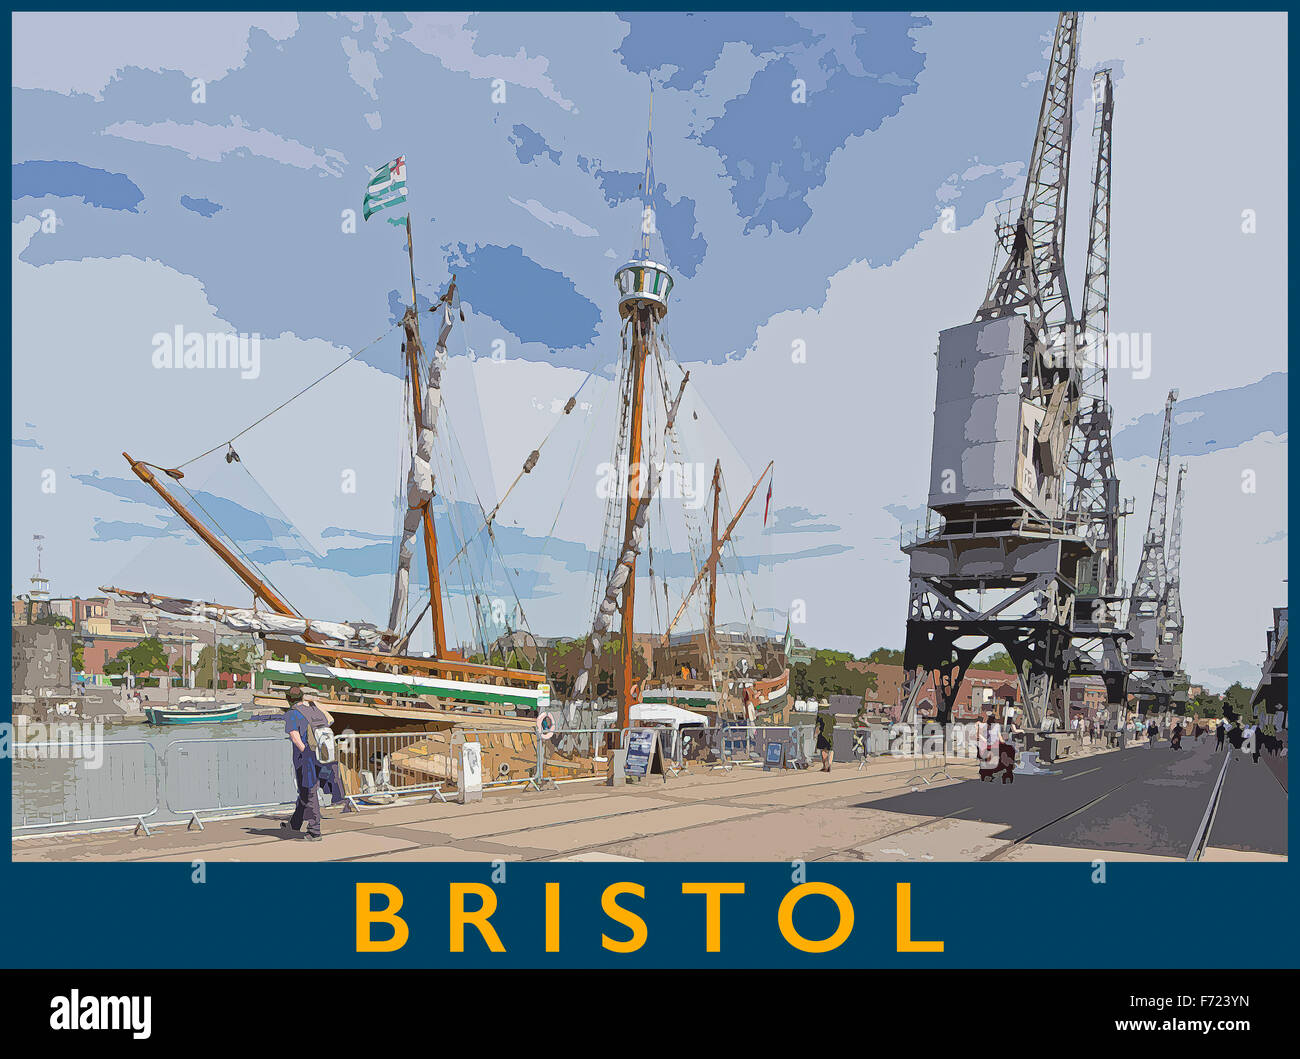 A poster style illustration from a photograph of Bristol Harbour, Bristol, England, UK - Stock Image